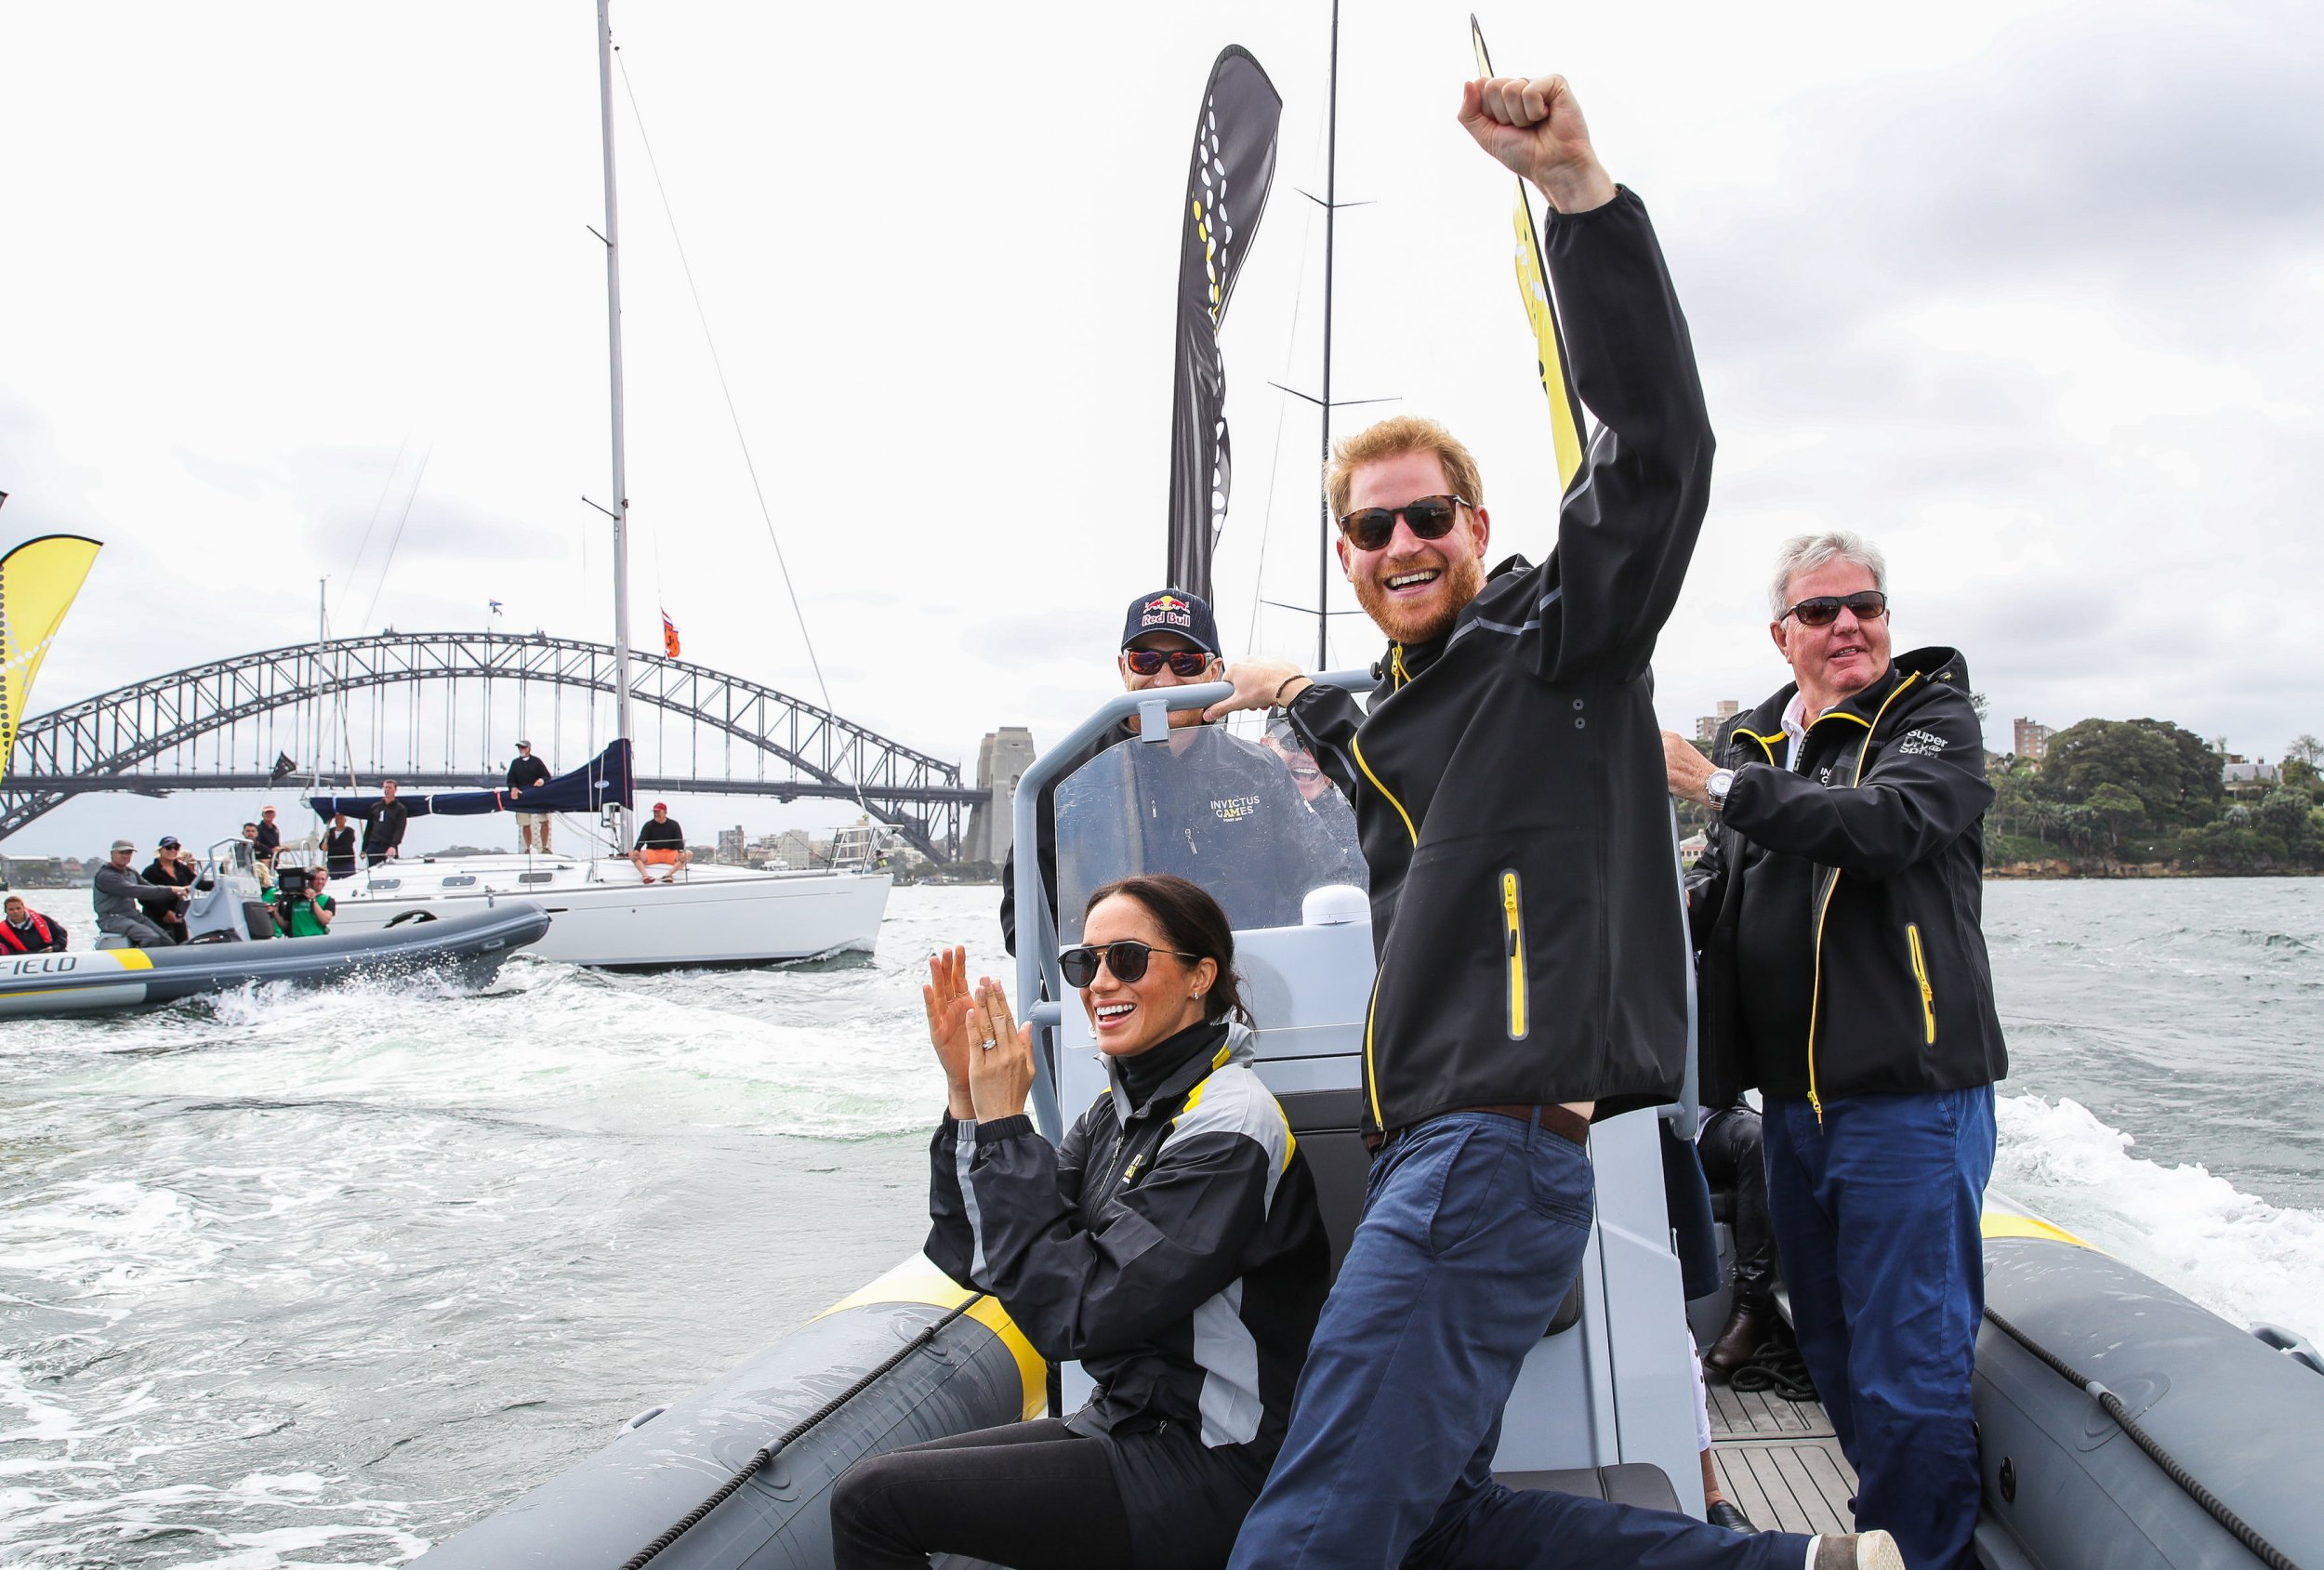 The Duke and Duchess of Sussex cheer on competitors taking part in a sailing event at the 2018 Invictus Games in Sydney harbour. PRESS ASSOCIATION Photo. Picture date: Sunday October 21, 2018. See PA story ROYAL Tour. Photo credit should read: Chris Jackson/Invictus Games Foundation/PA Wire